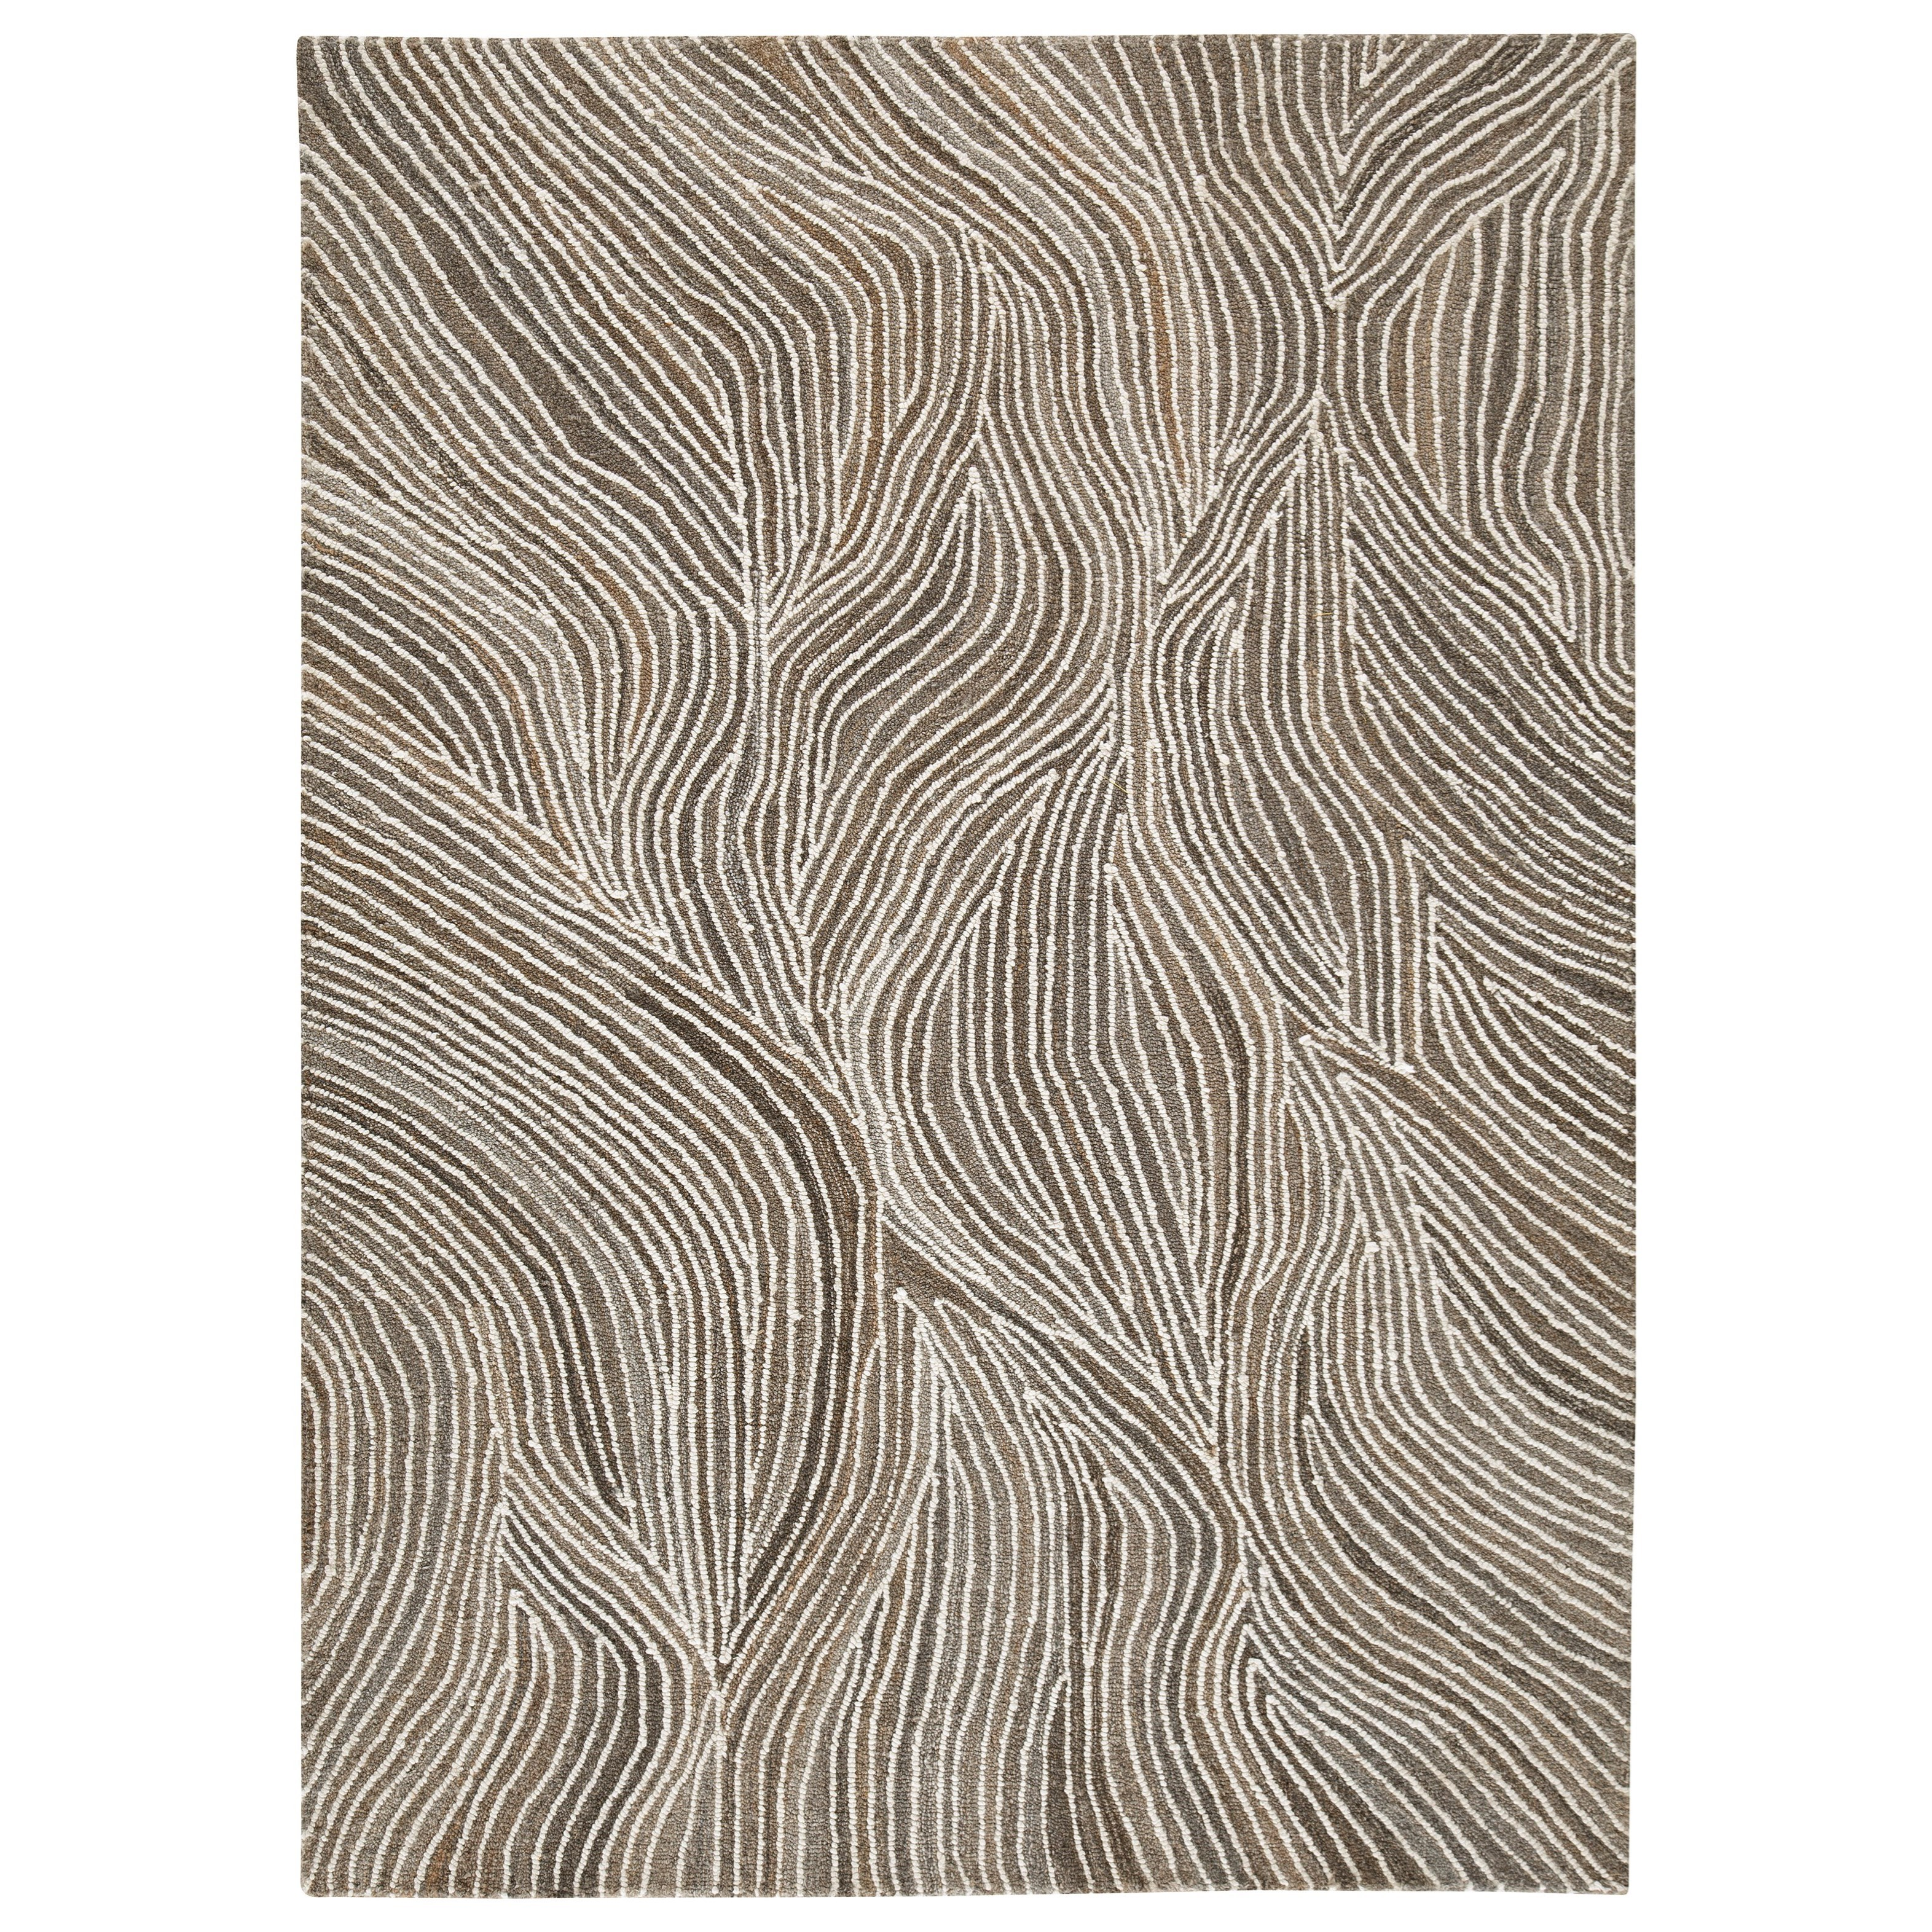 Contemporary Area Rugs Wysleigh Ivory/Brown/Gray Large Rug by Signature Design by Ashley at Simply Home by Lindy's